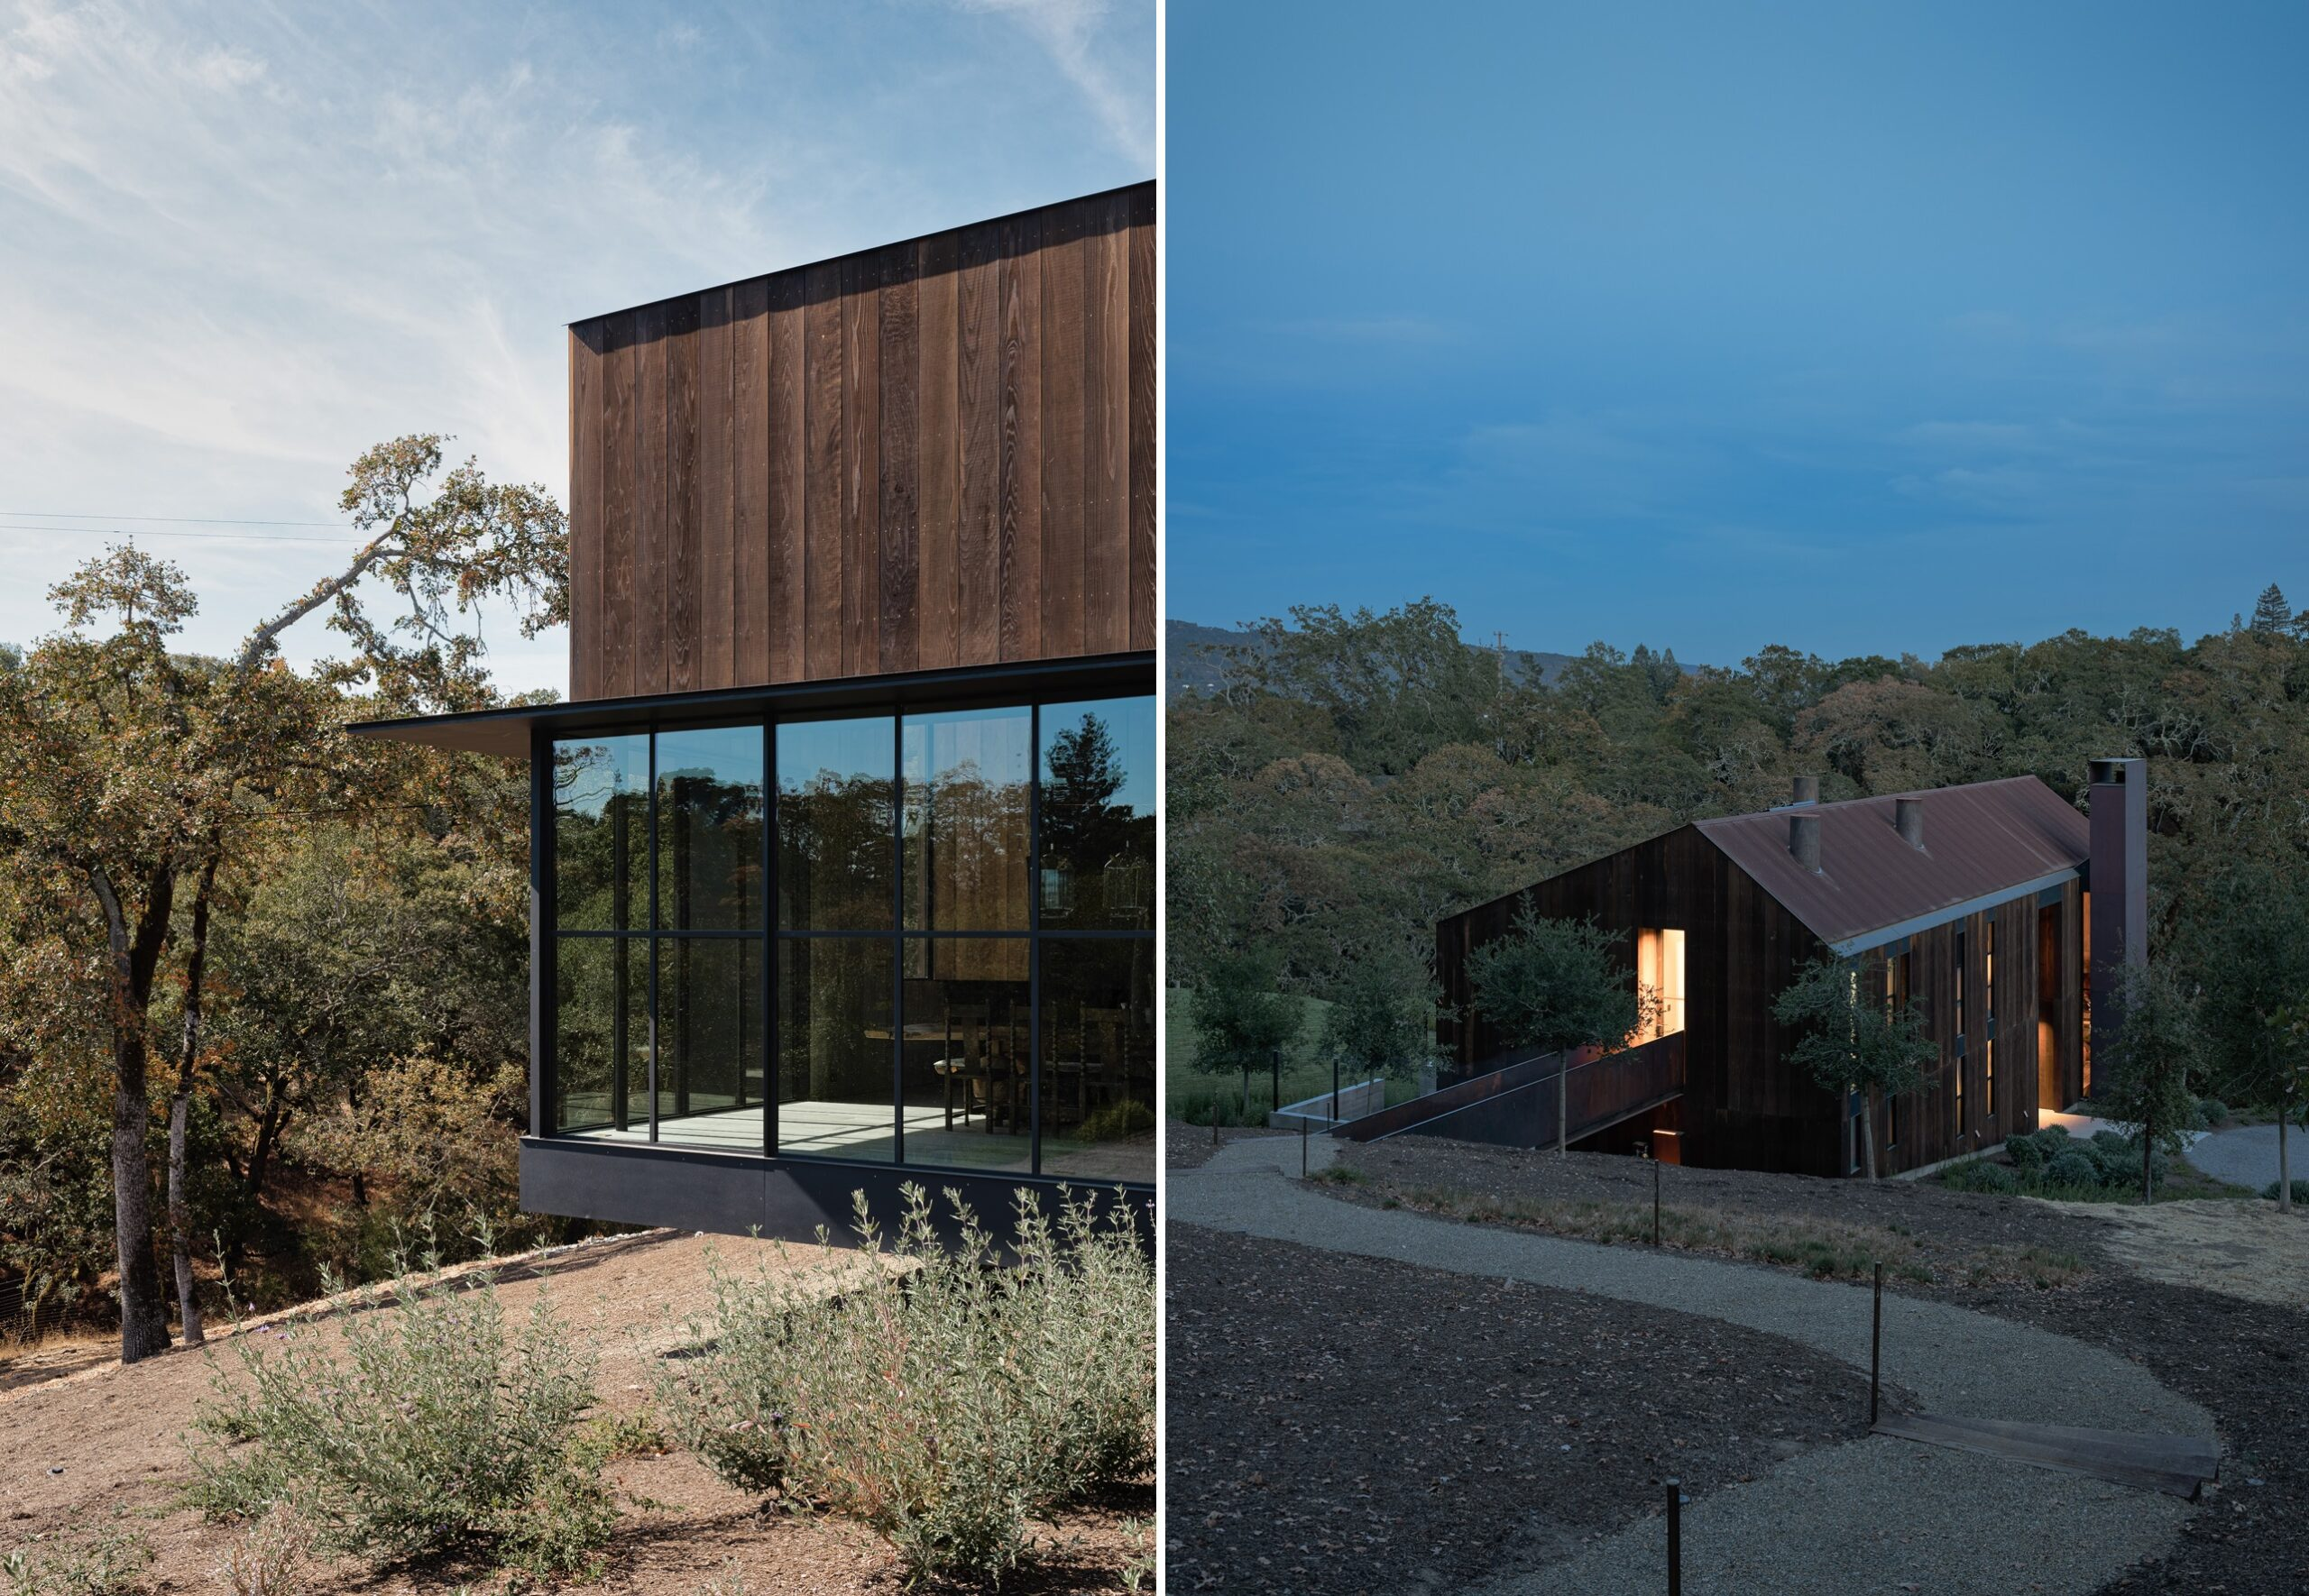 The Big Barn fits naturally into its surroundings by blending the old and the new